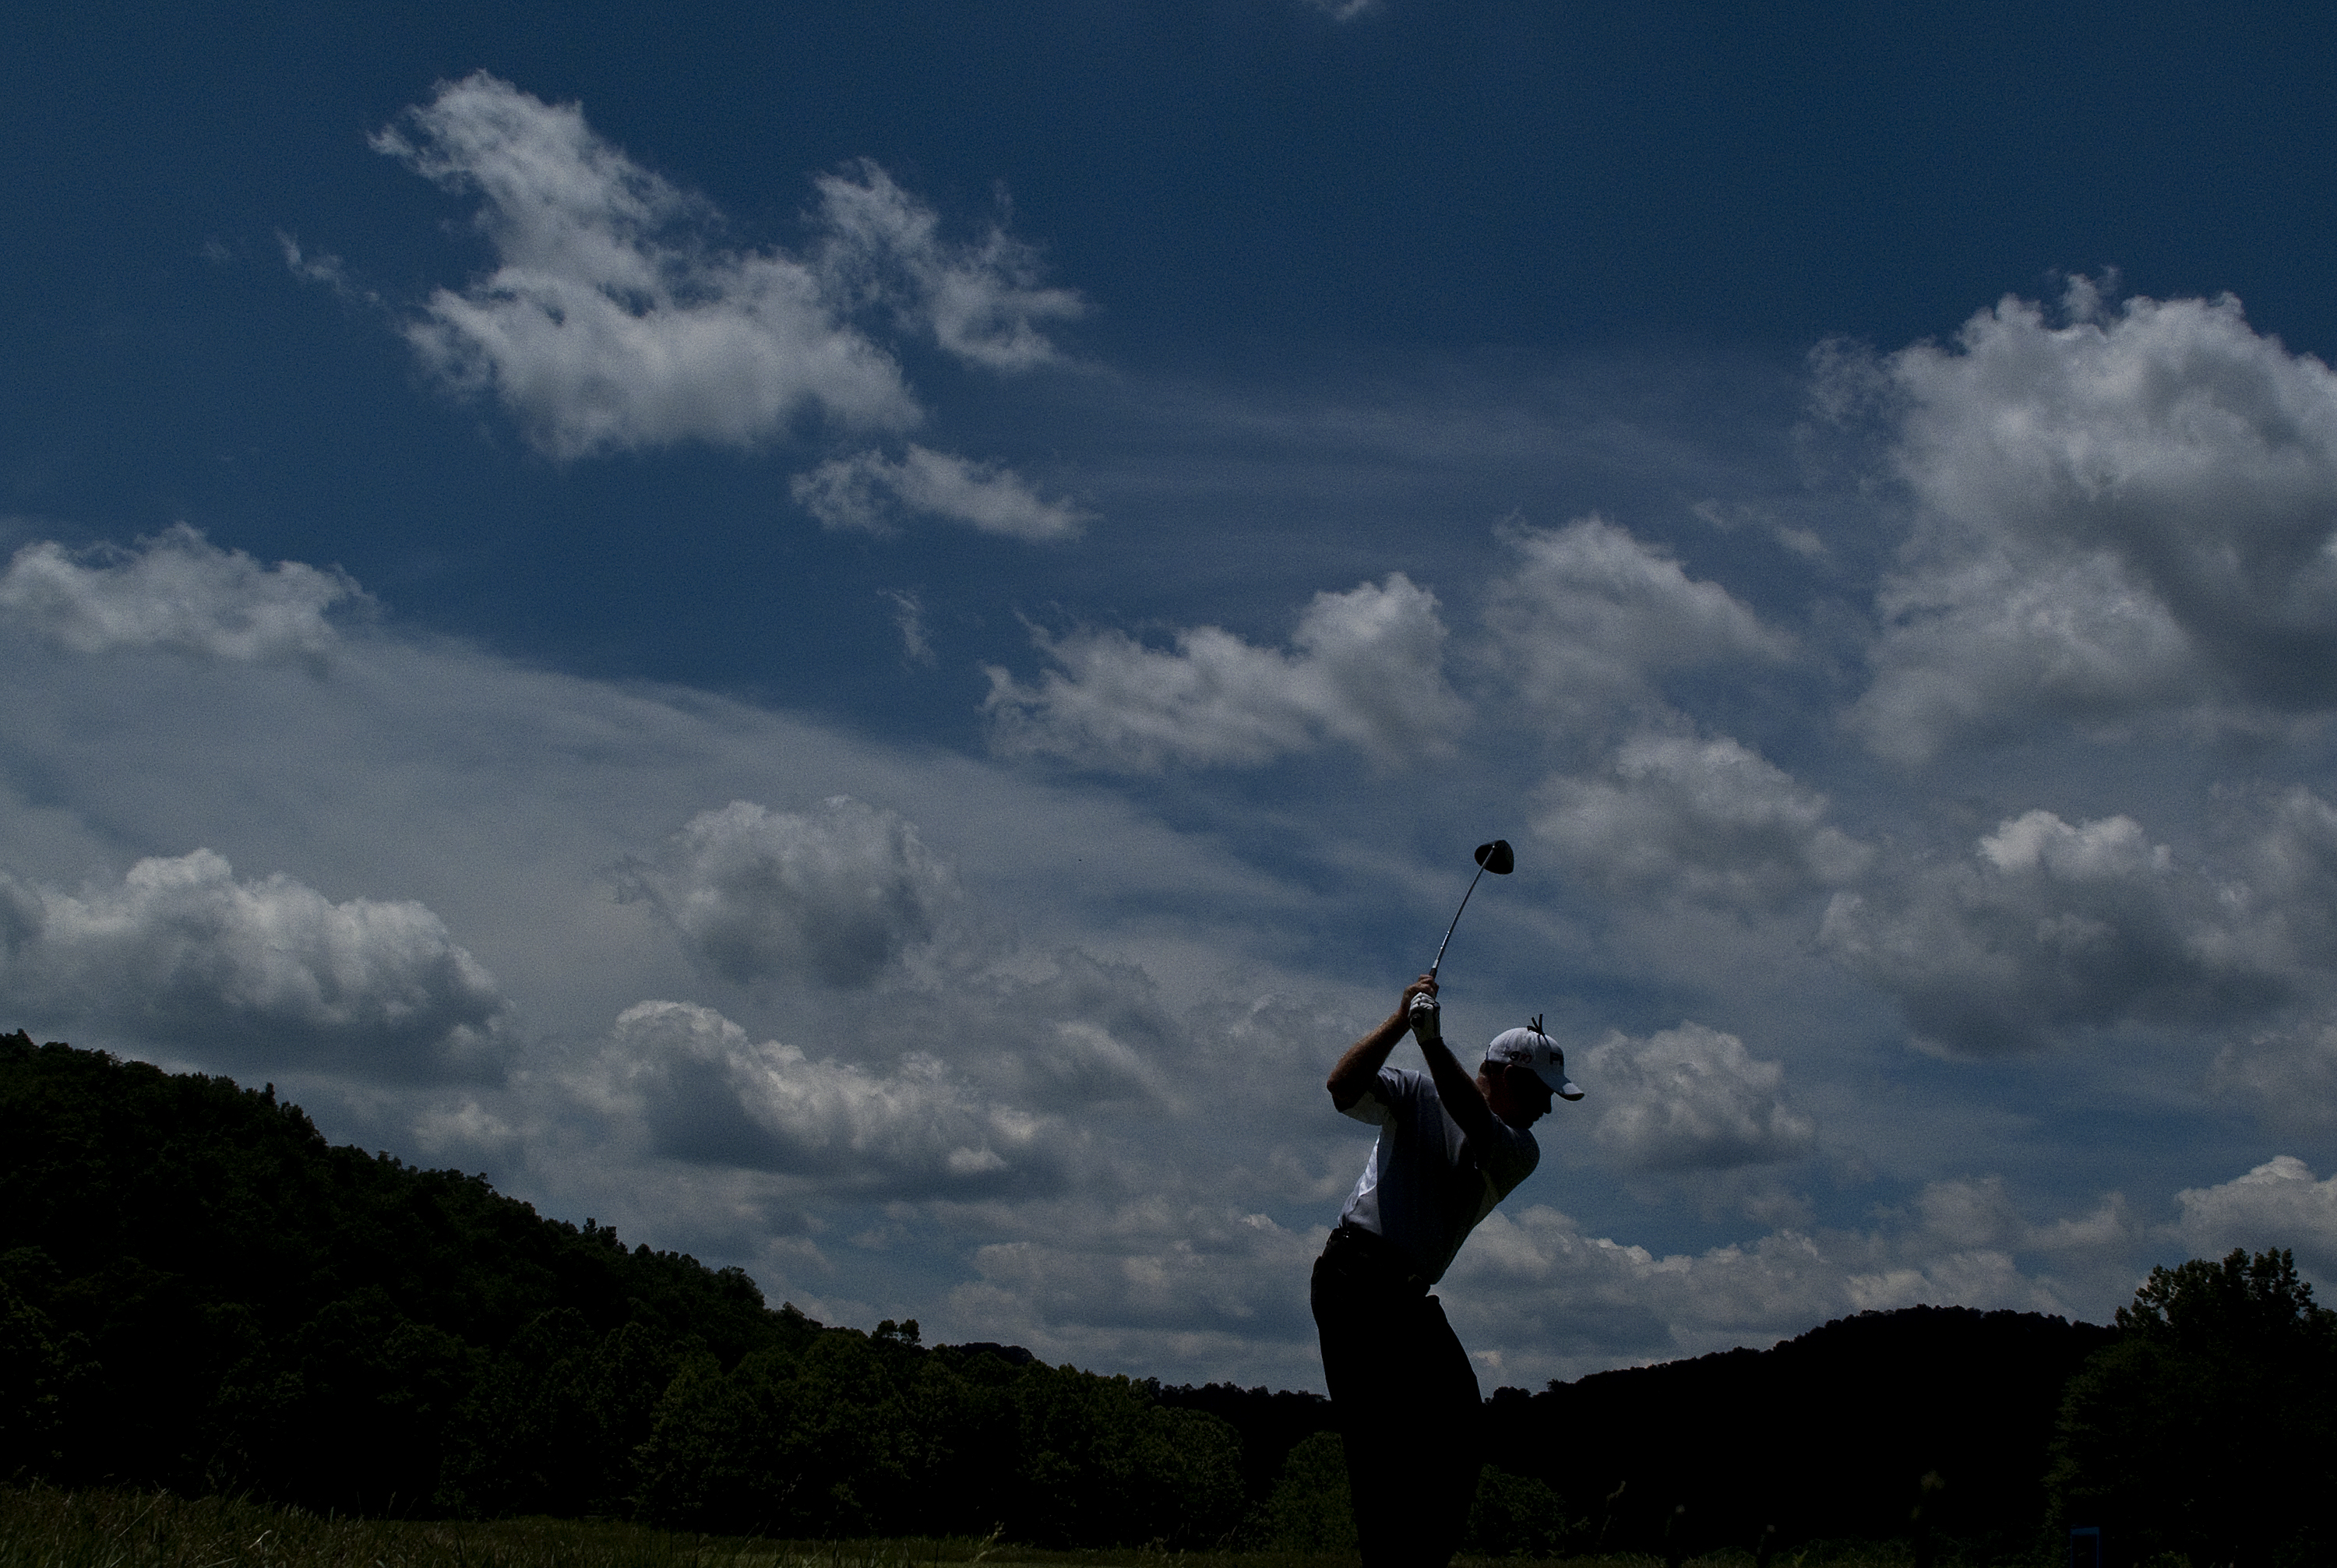 BRIDGEPORT, WV - JUNE 27: Bob May tee's off on the sixth hole during the third round of the Nationwide Tour Players Cup at Pete Dye Golf Club on June 27, 2009 in Bridgeport, West Virginia. (Photo by Chris Keane/Getty Images)